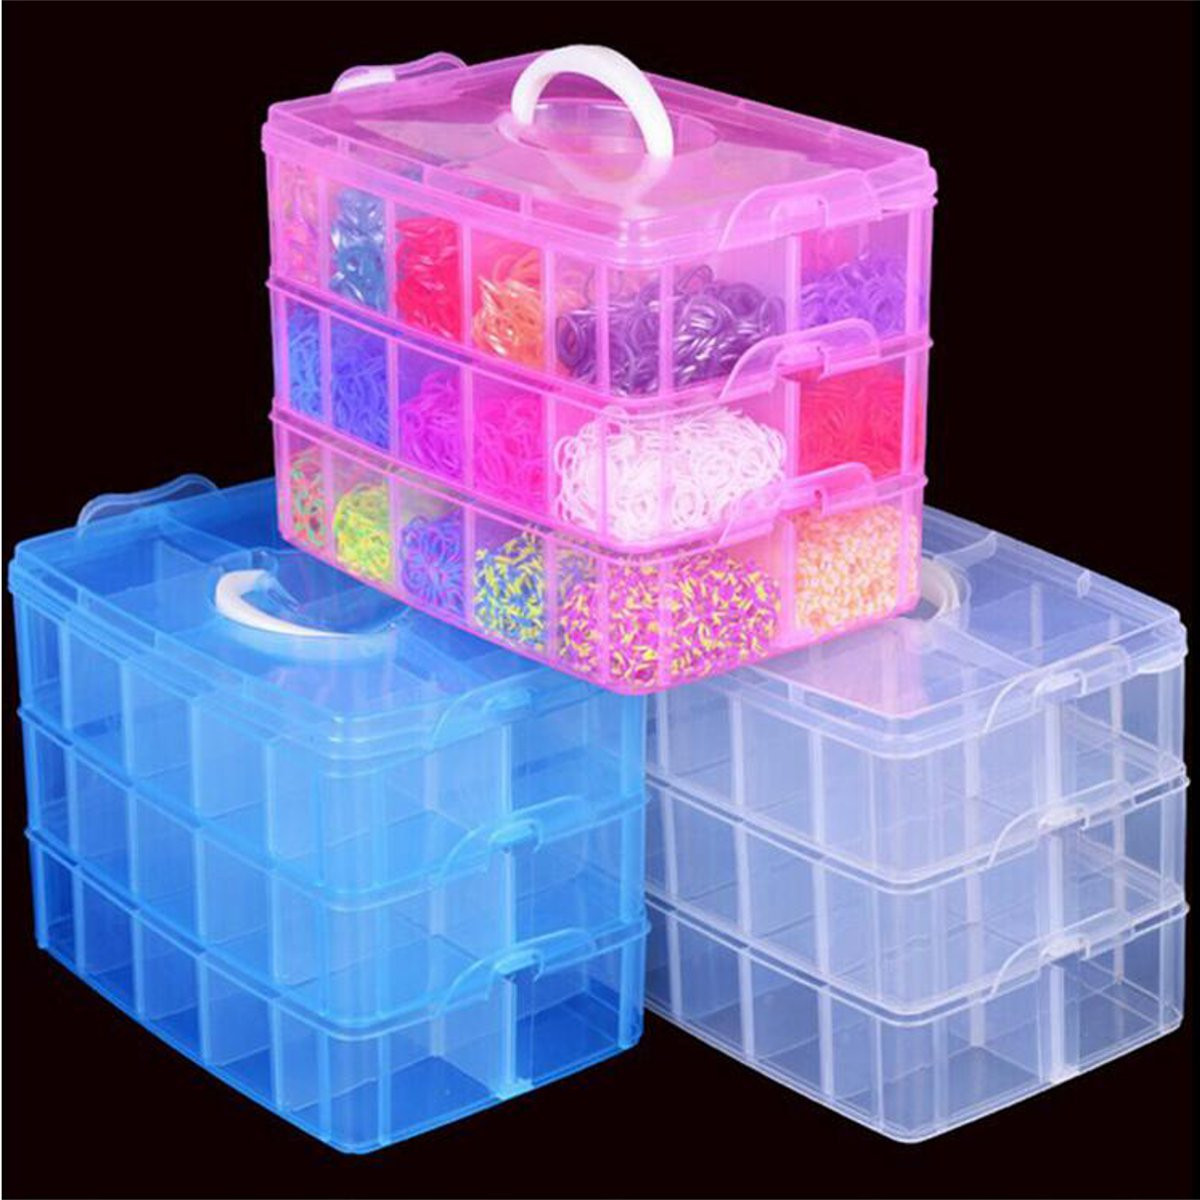 Meigar 3 Layer 18 Grids Slot Plastic Craft Storage Box|Stackable Jewellery Tool Container|Clear Plastic Stackable Storage Box for Storing & Organising Sewing Embroidery